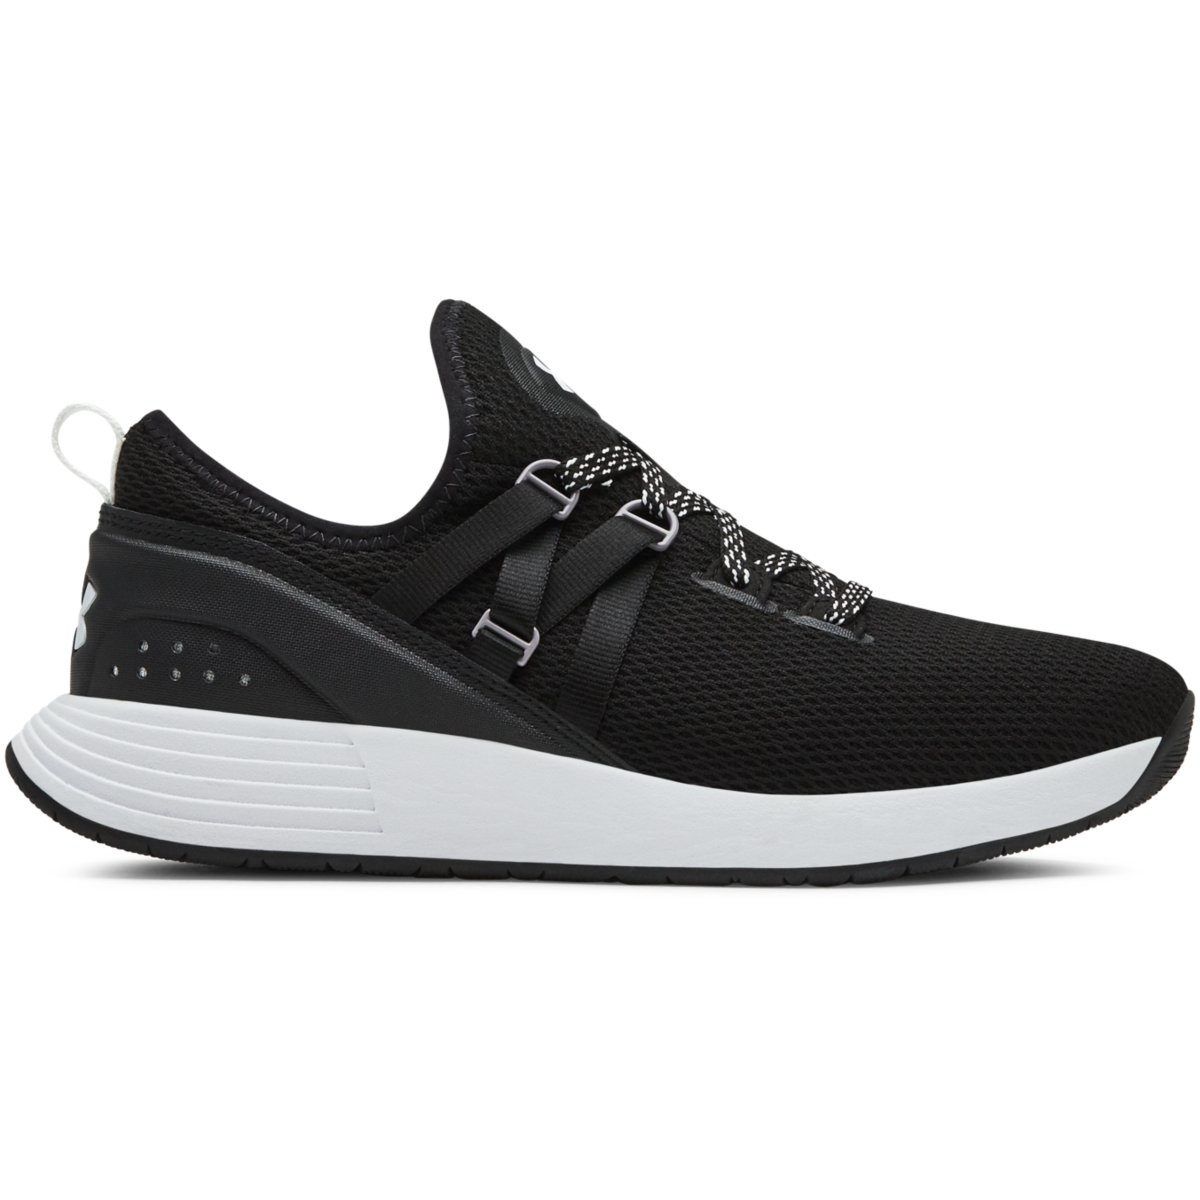 Under Armour Women's Breathe Trainer | Amour